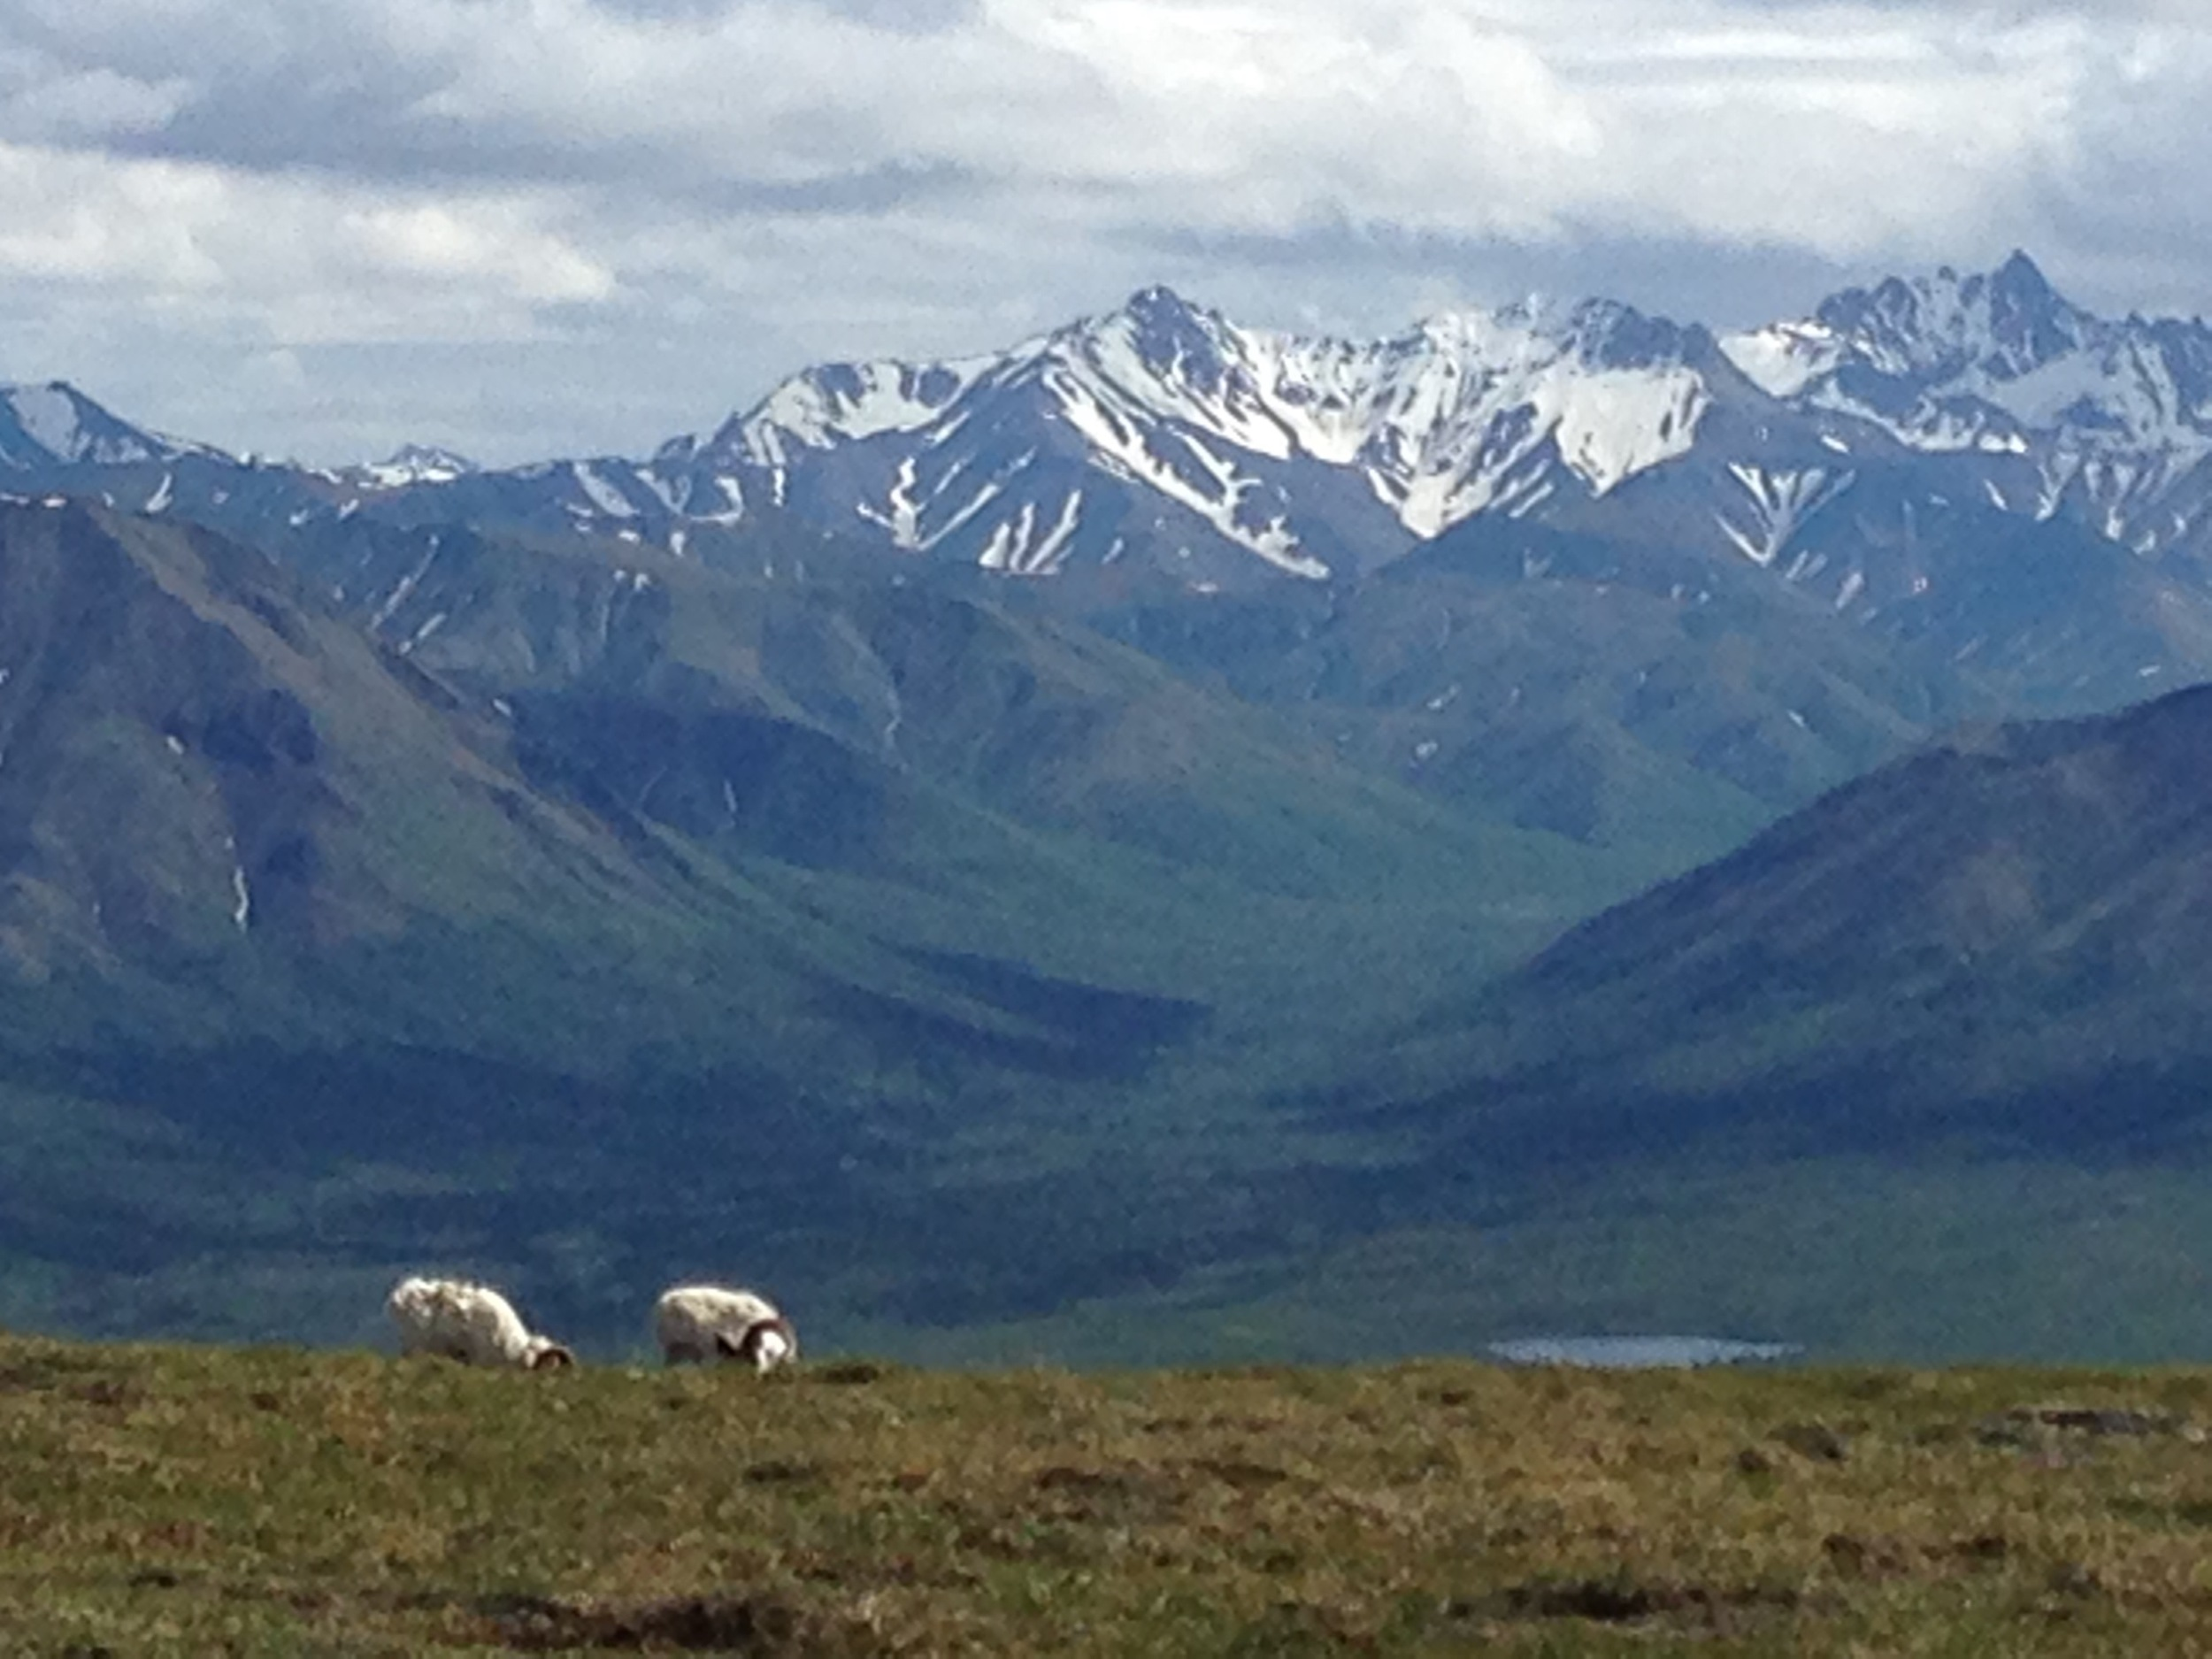 Dall sheep on Primrose ridge above the savage river with the Alaska Range in the background